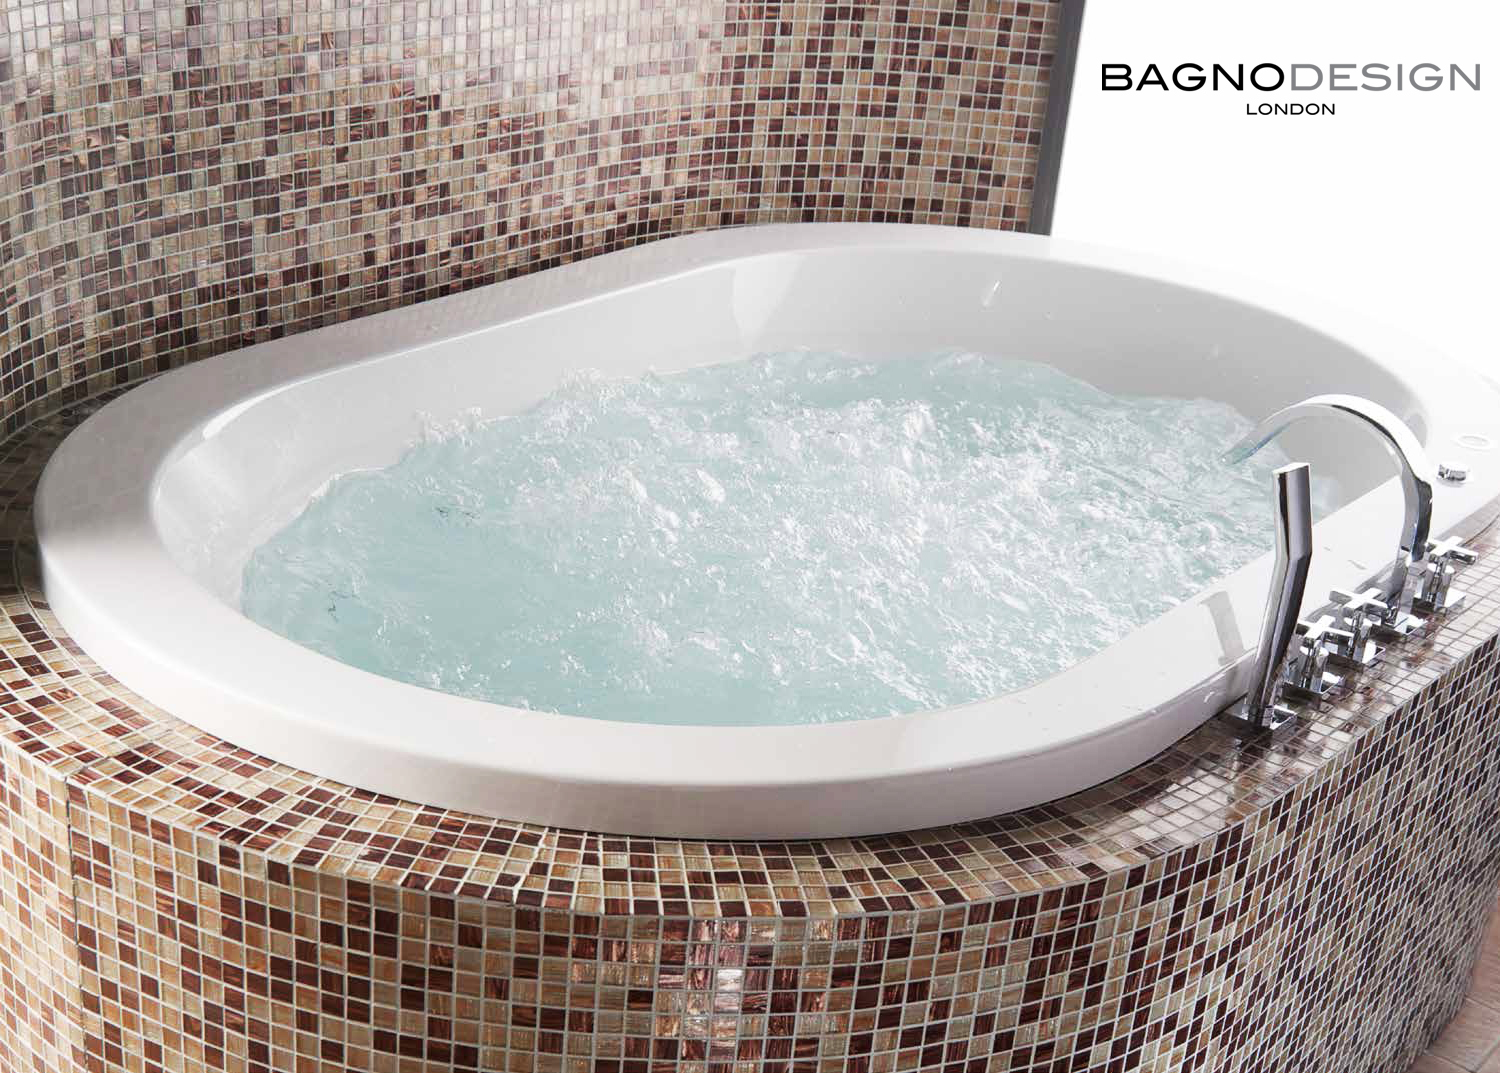 Bagno Design Bradford Bagnodesign London Bagnodesign